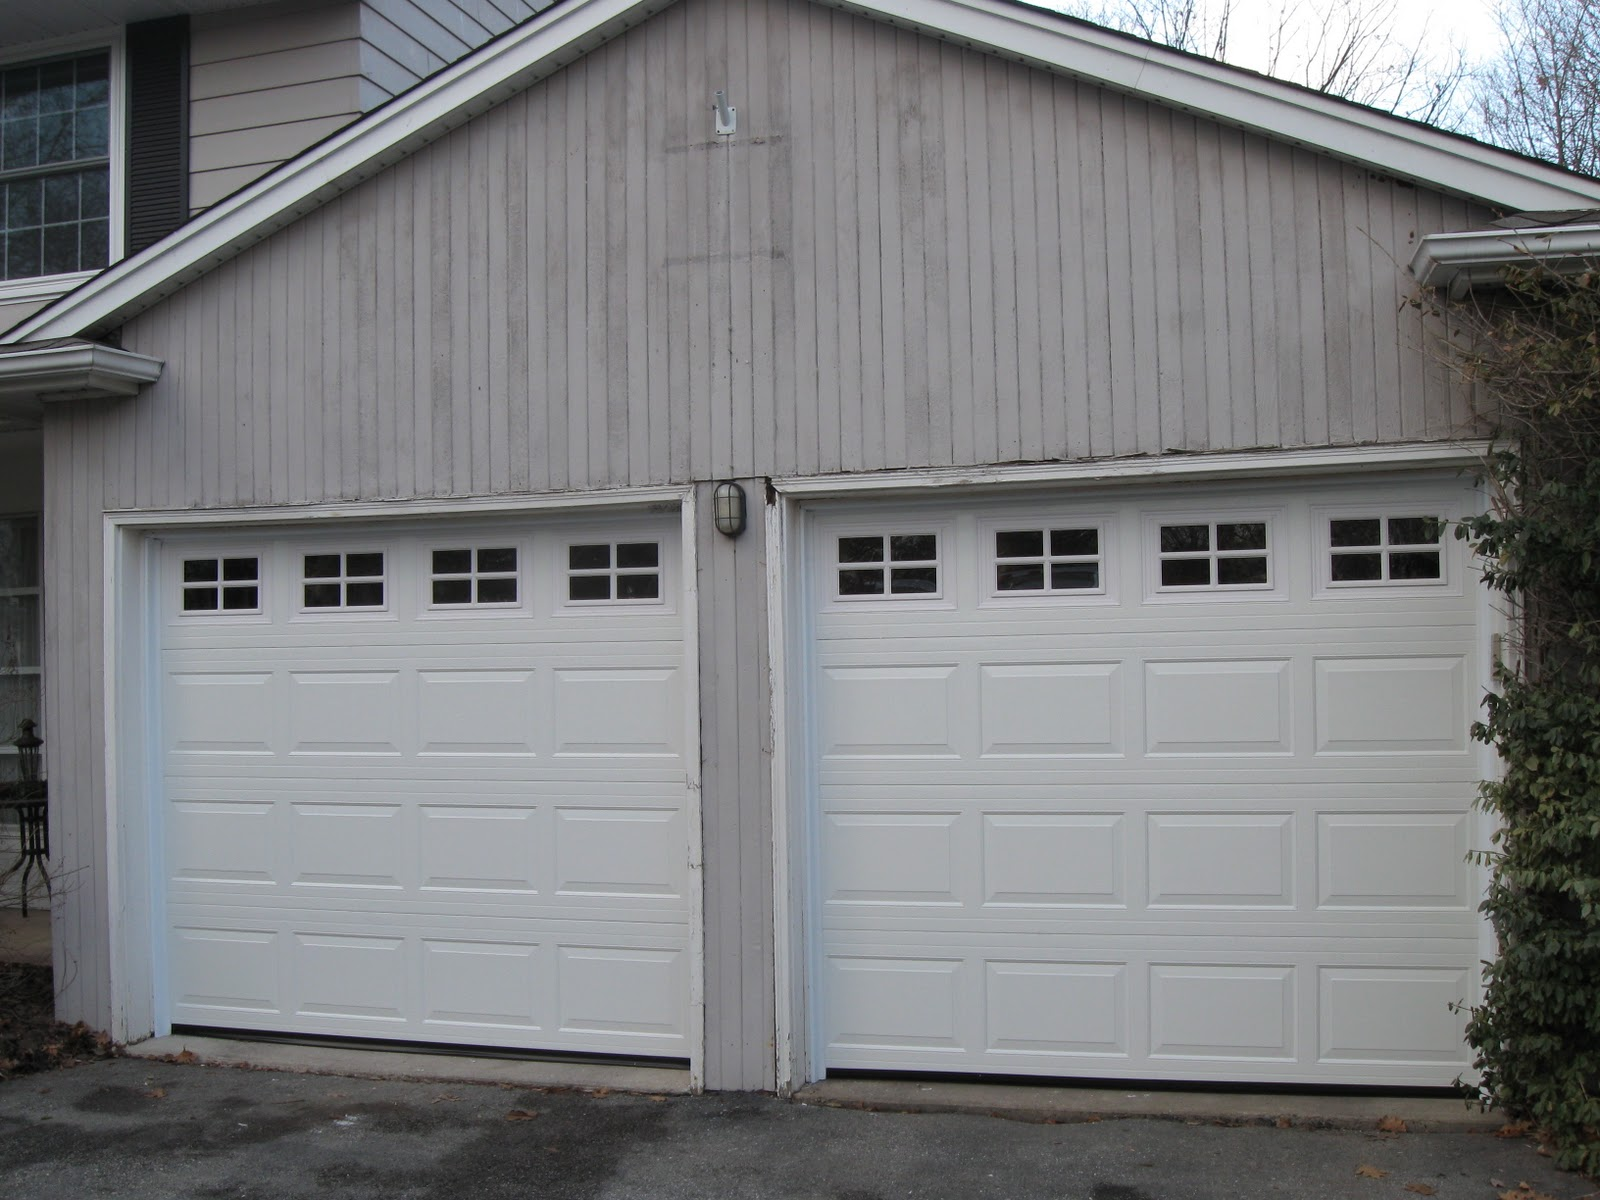 1200 #5D5851 Rave Projects: New Garage Doors save image Garage Doors New 36871600